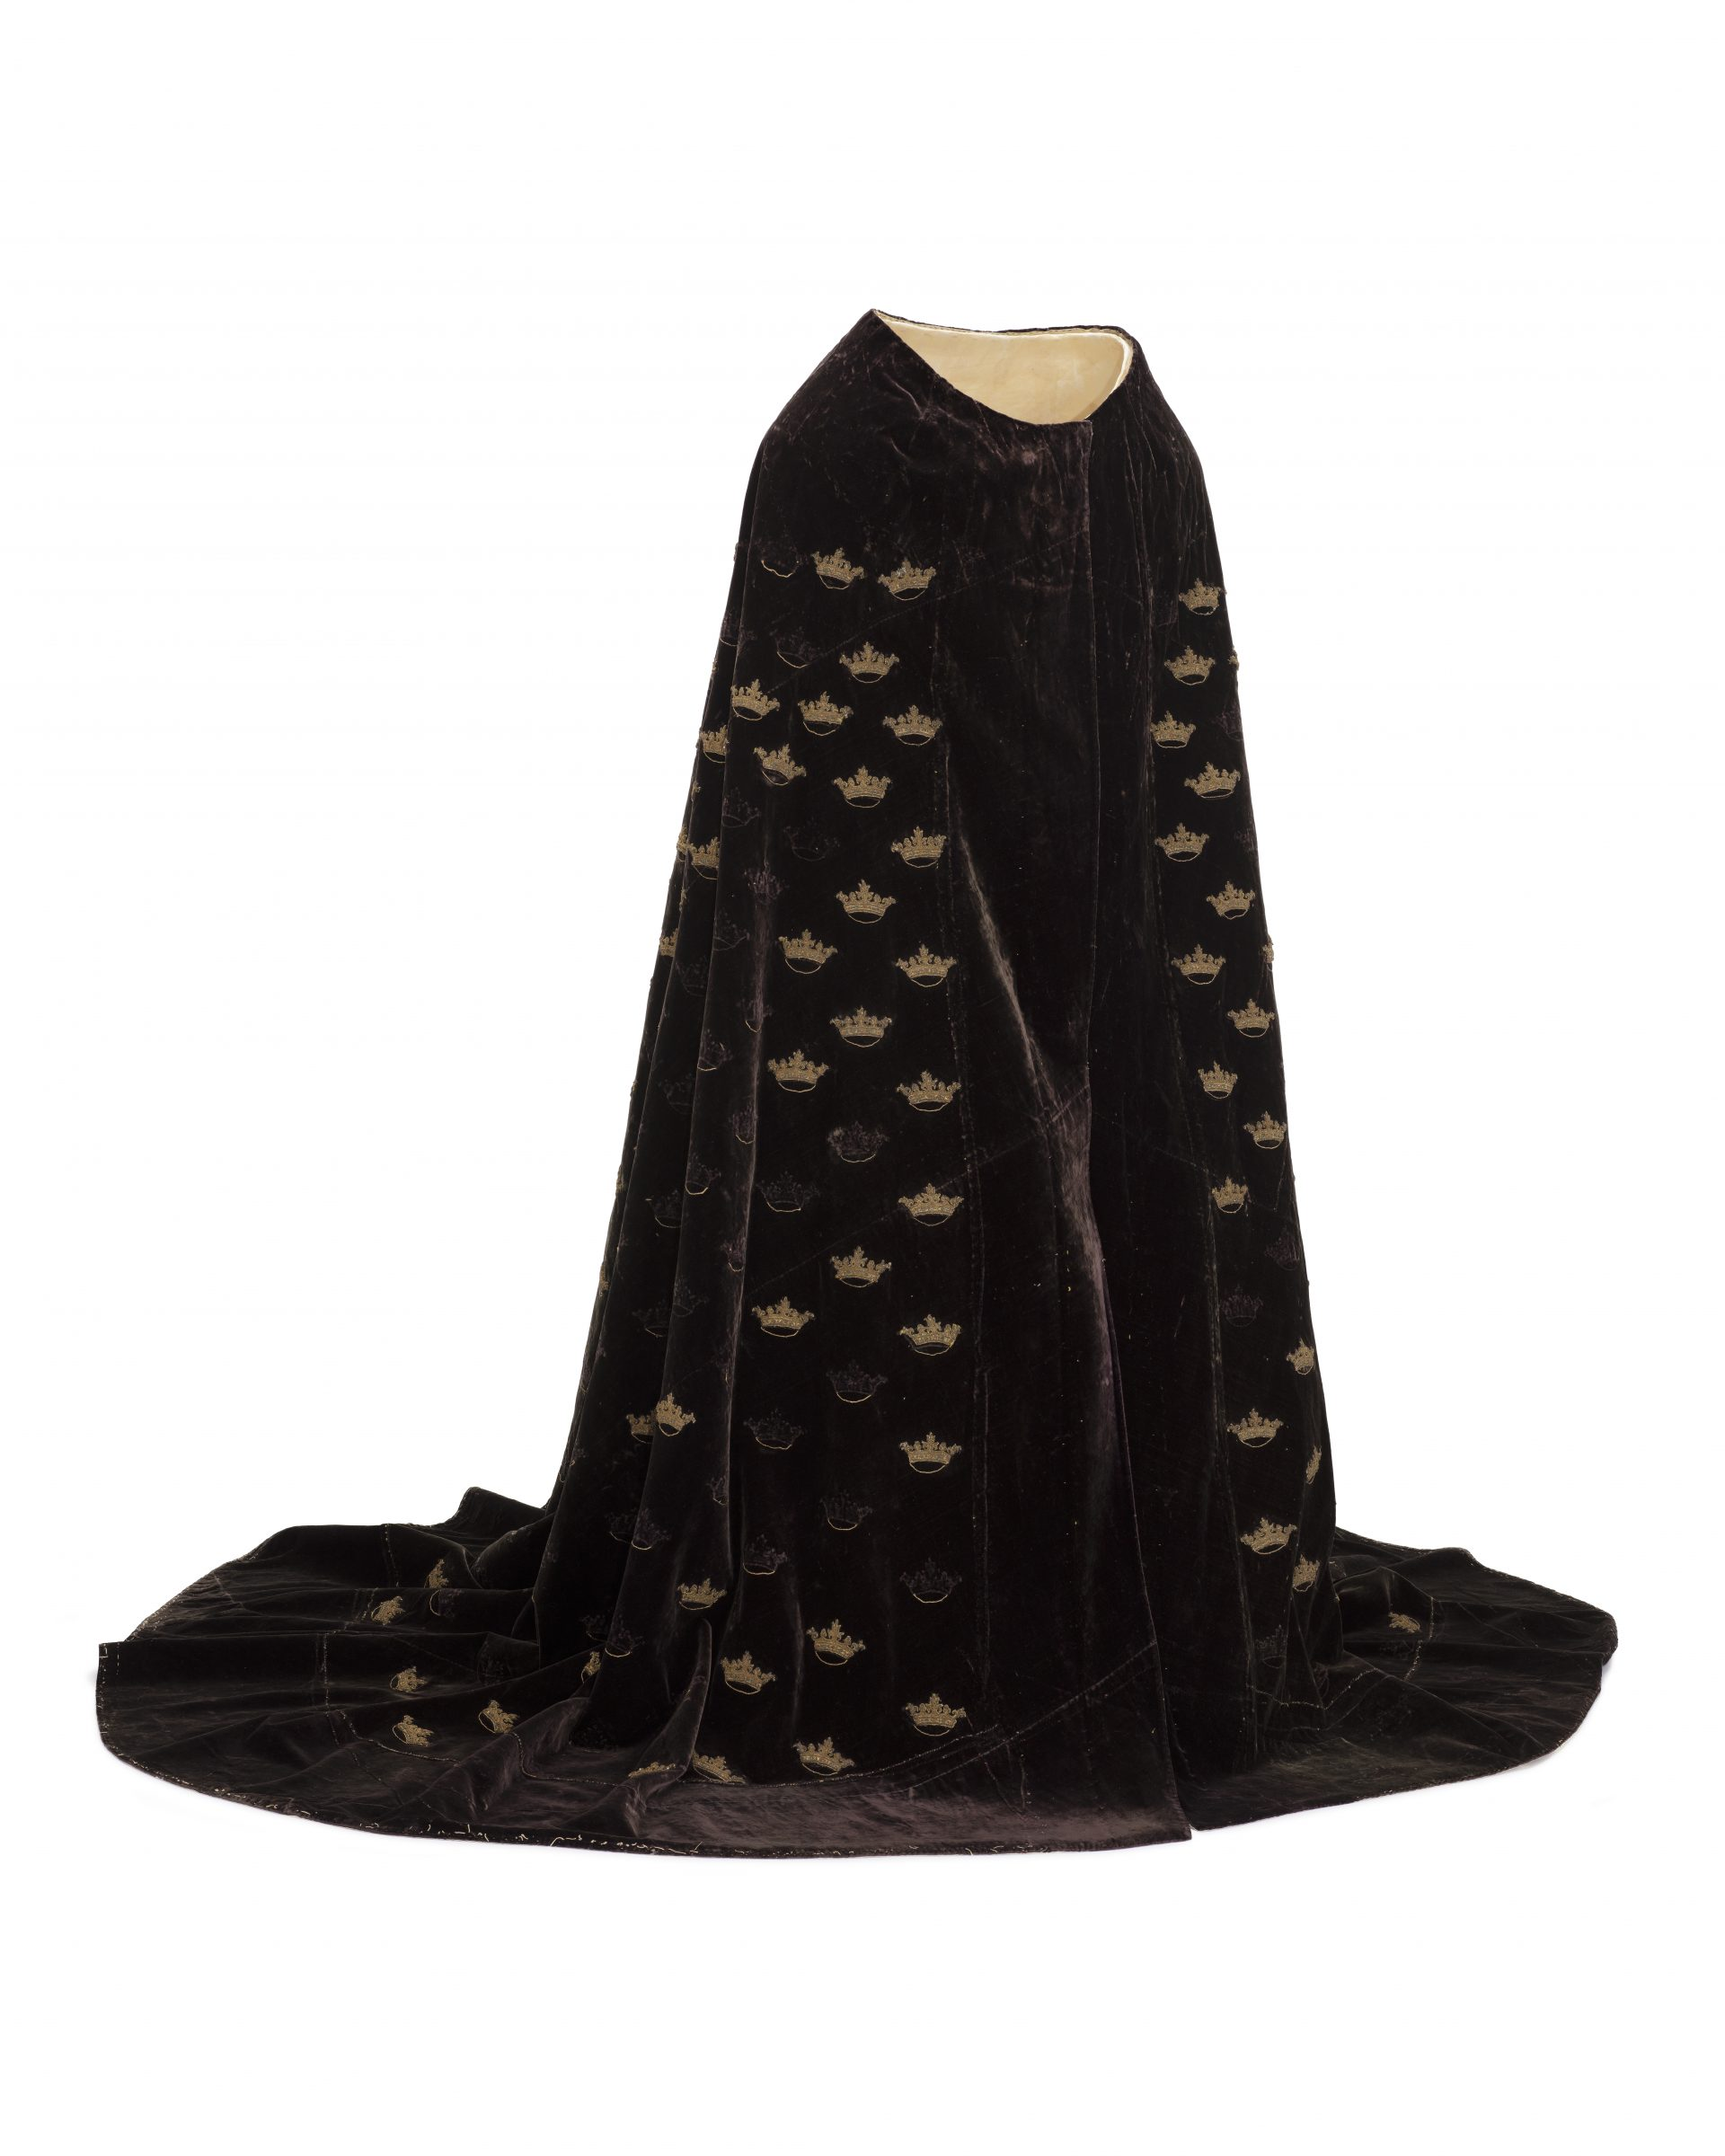 A dark cloak with embroidered crowns.